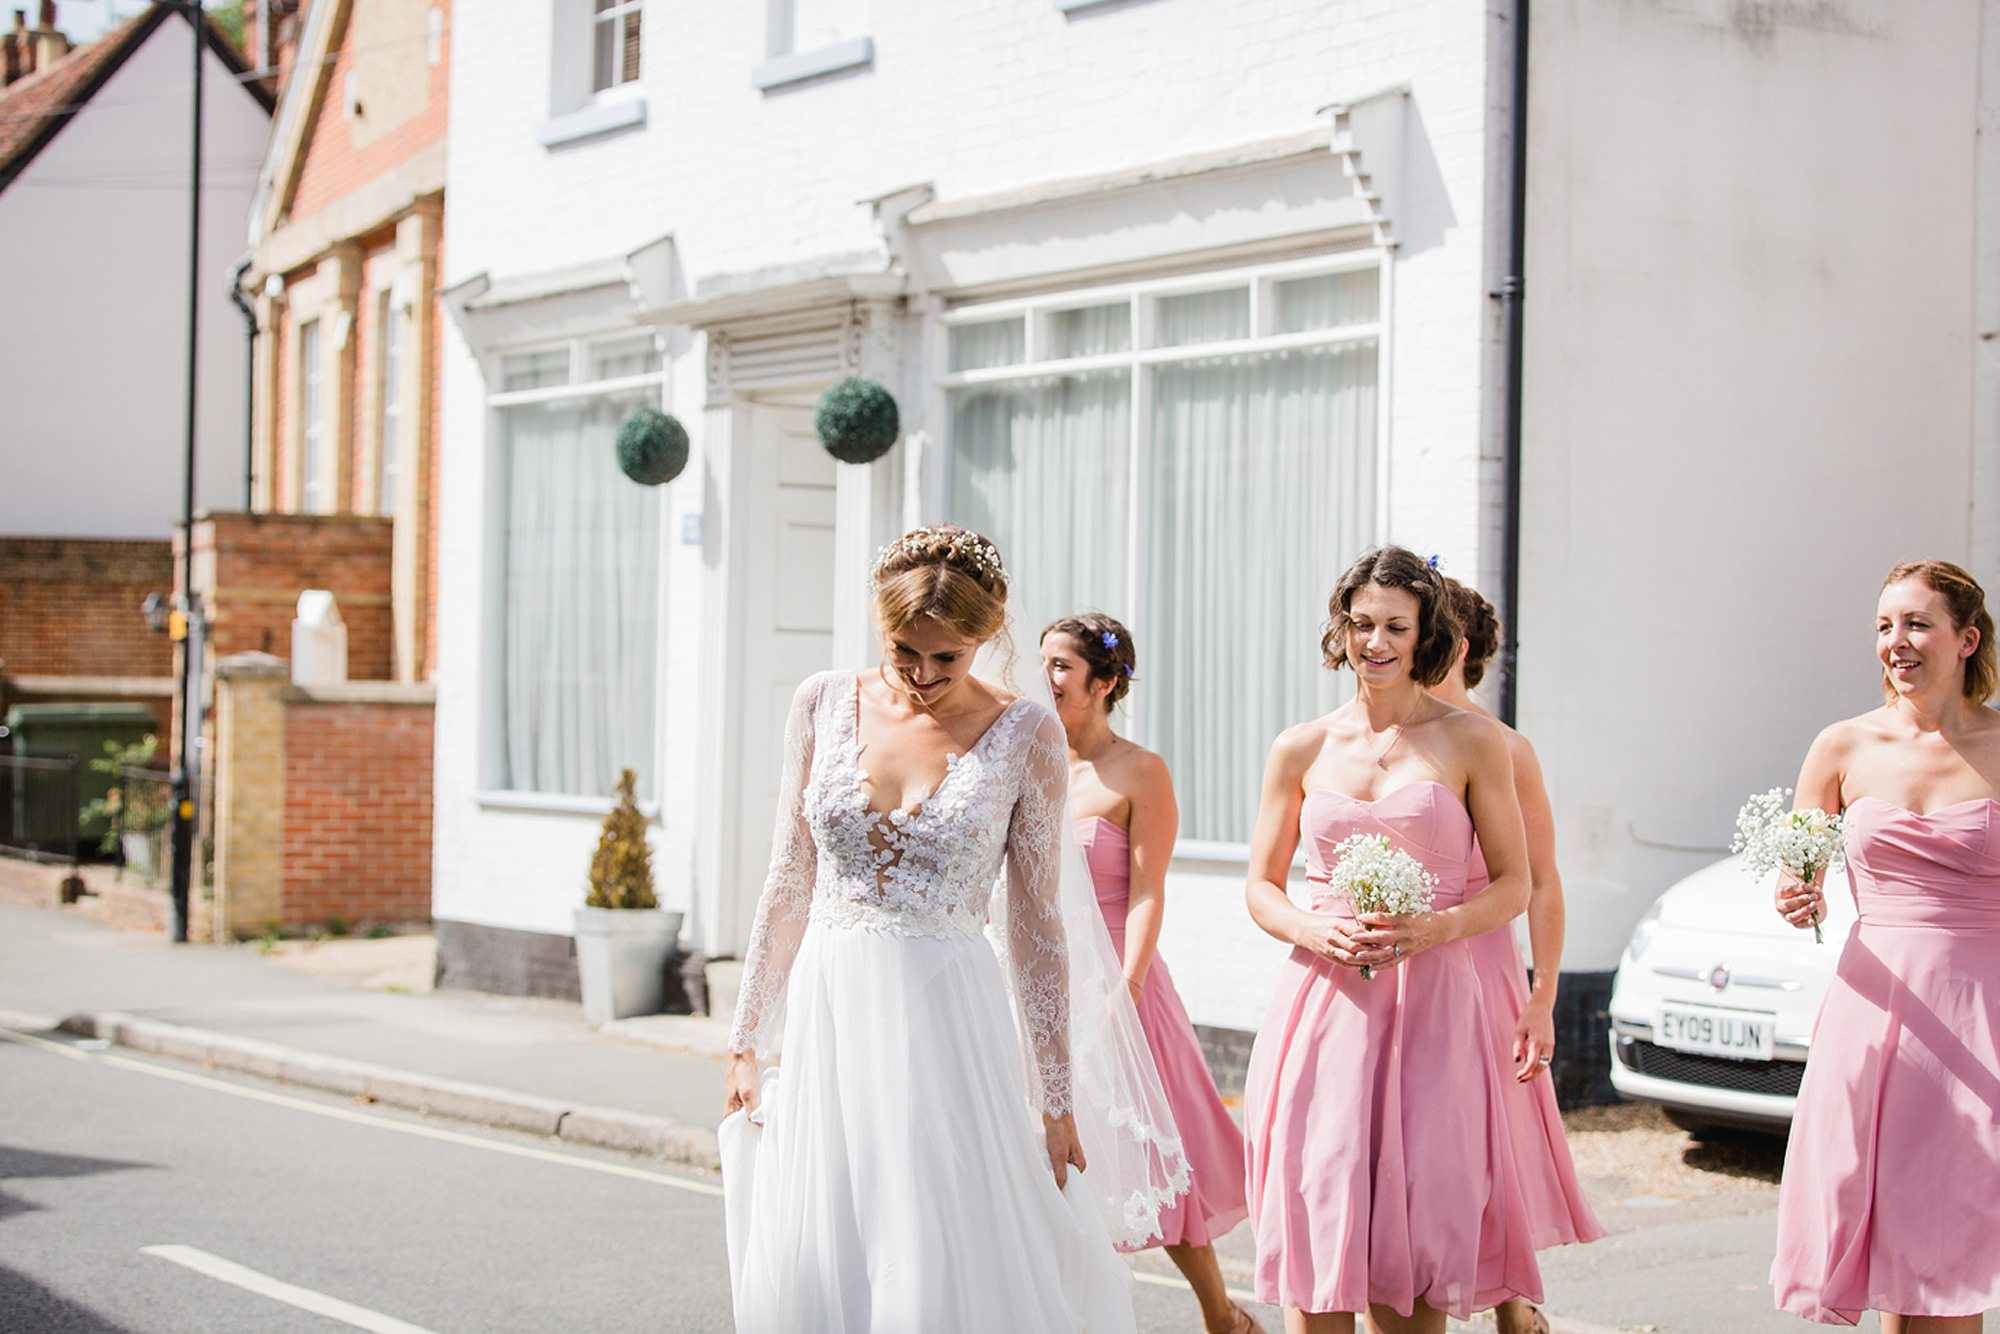 Marks Hall Estate wedding photography bride crossing road